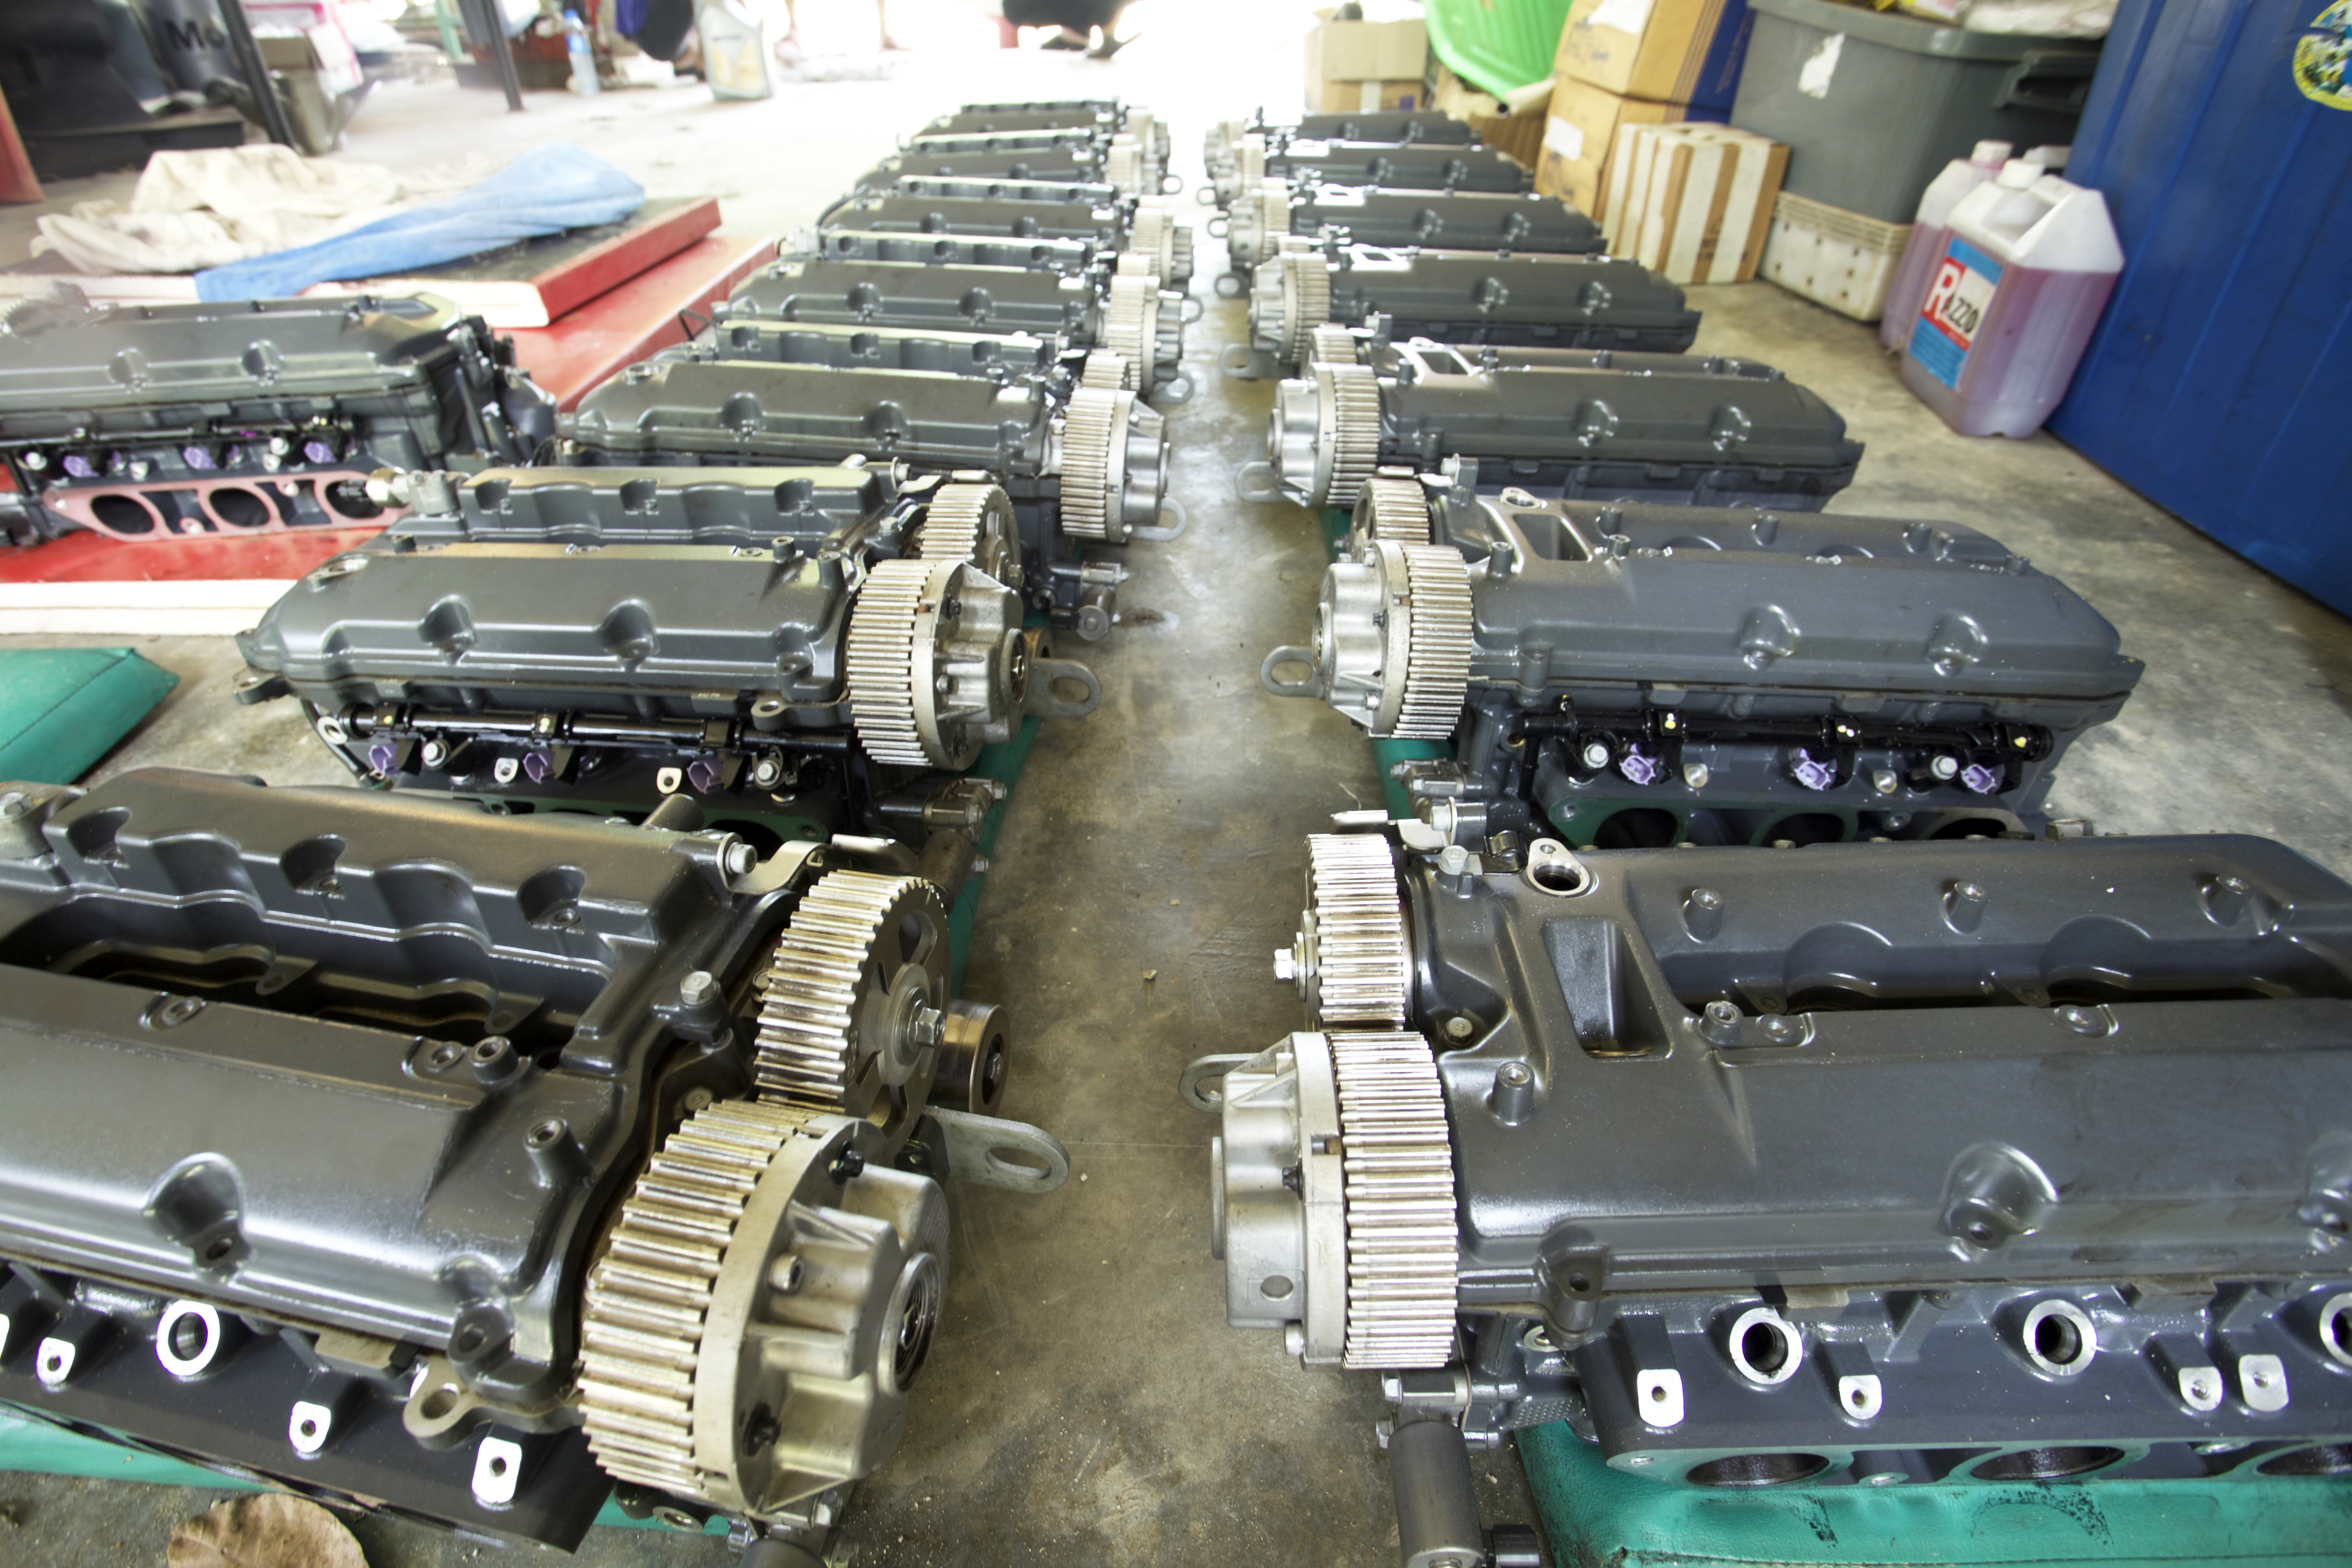 Outboard engine service similancharter and tour co ltd for Most reliable outboard motor 2016